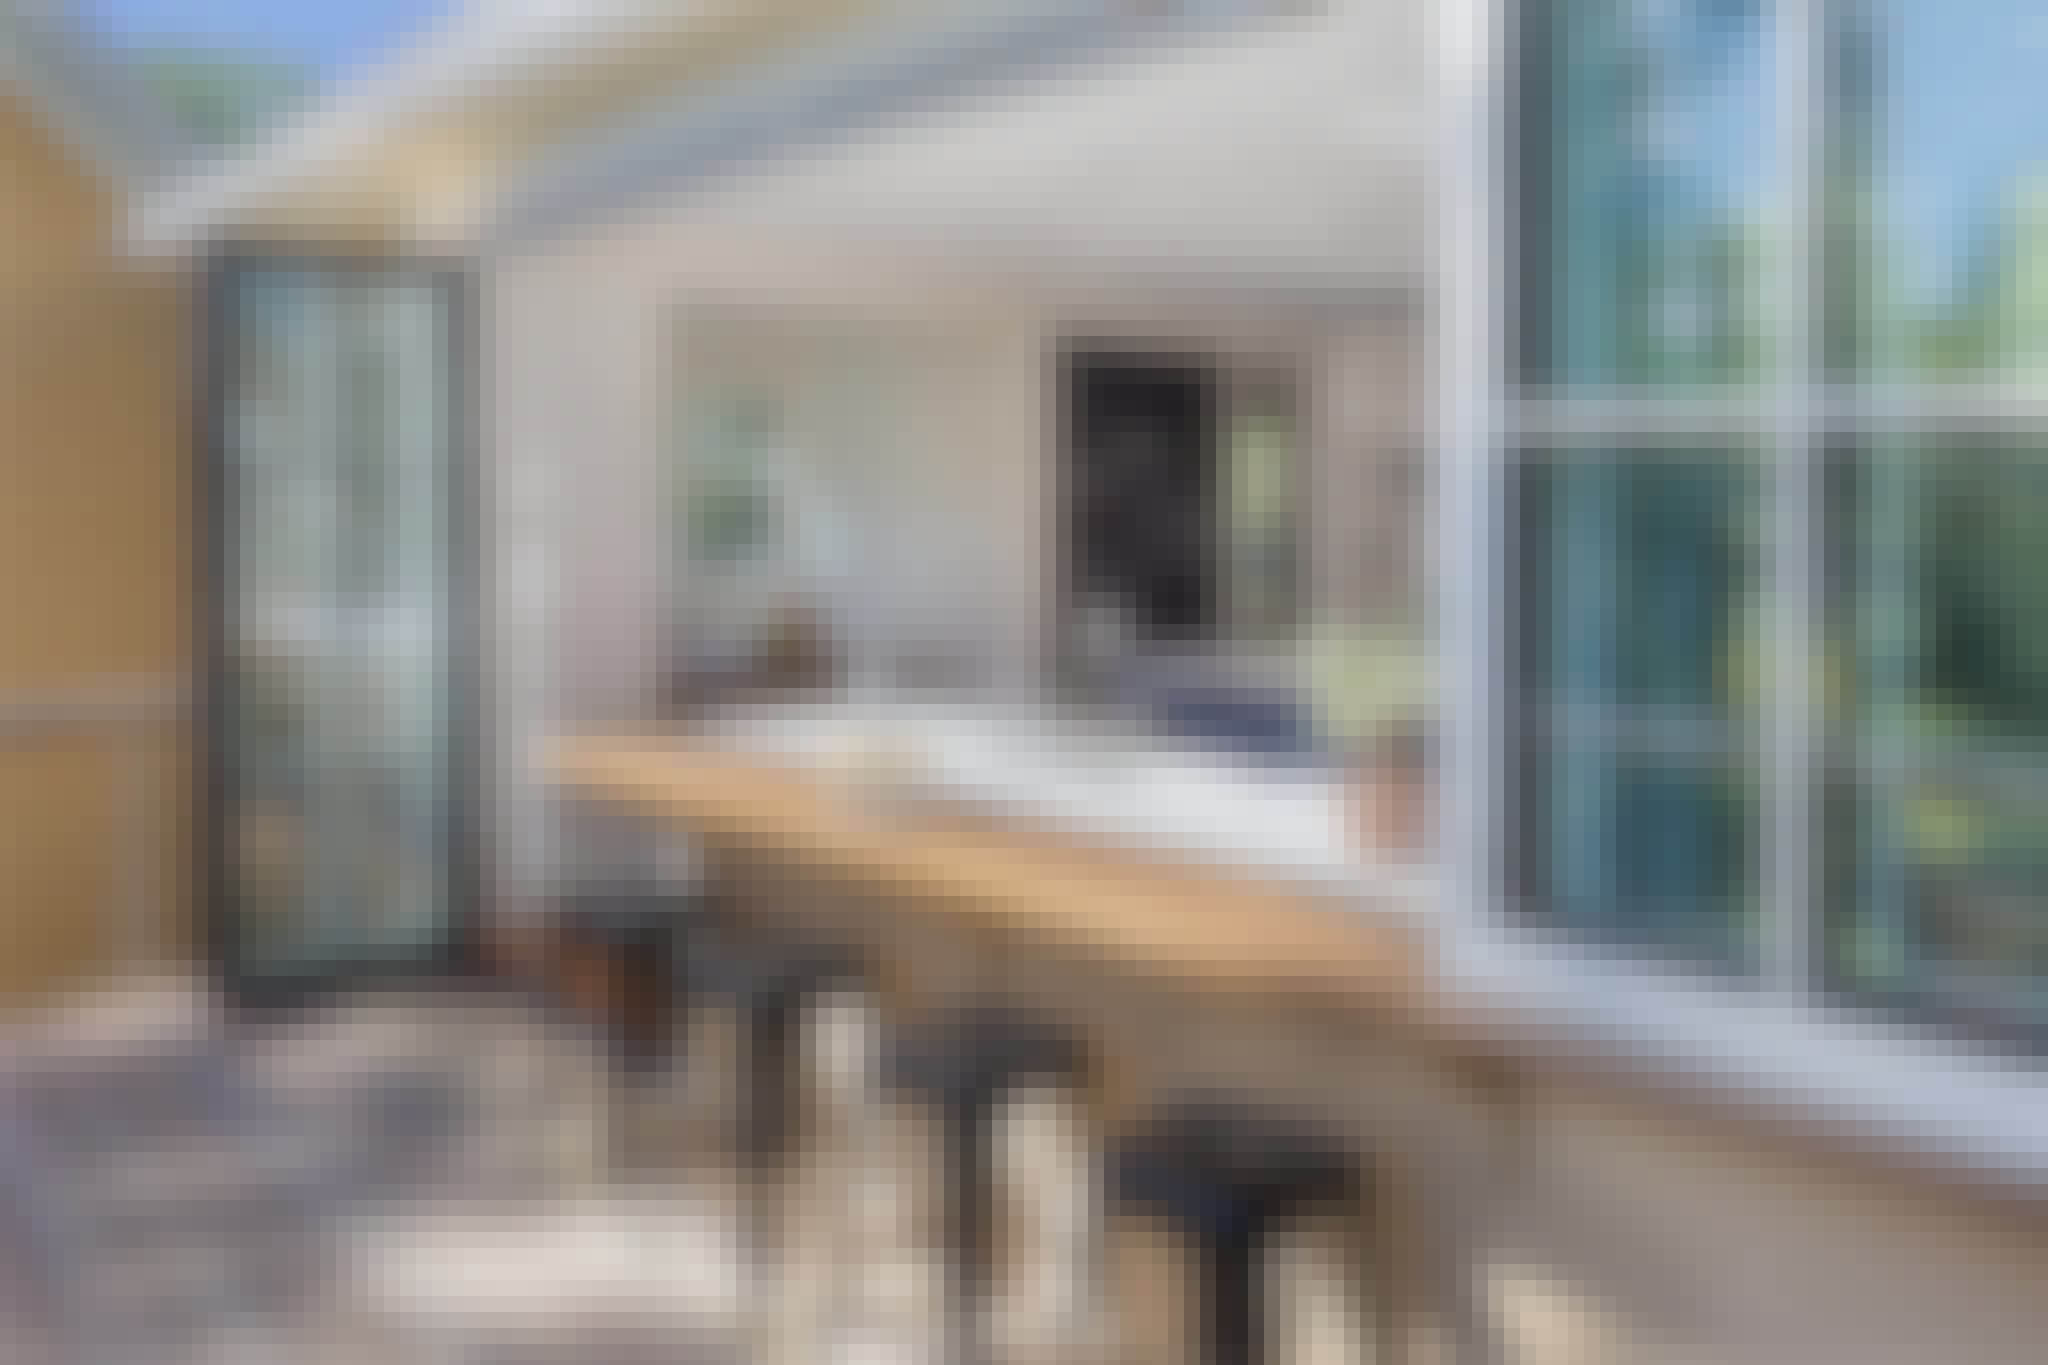 indoor outdoor living with moving glass walls 2021 interior design trends